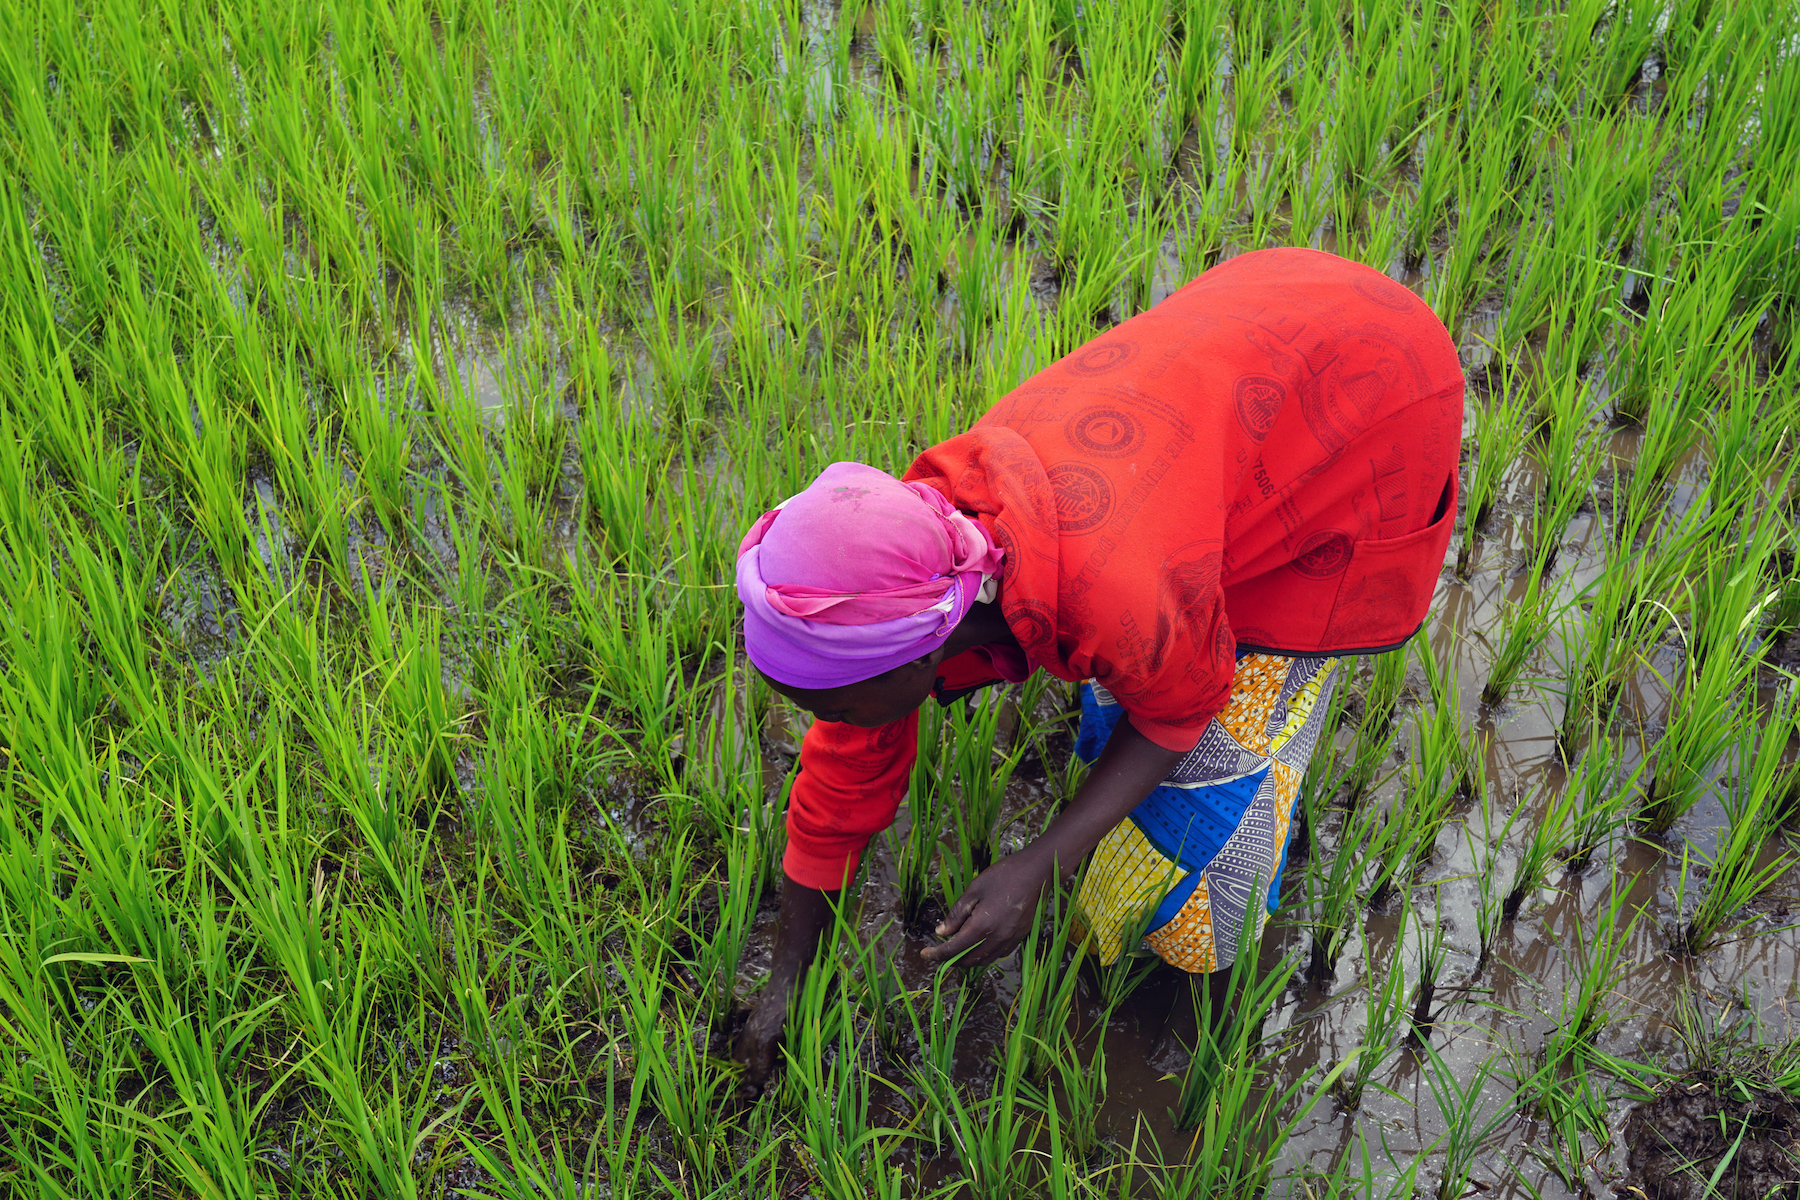 Nyirabashyitsi Esperance removes weeds from the rice paddy by hand.